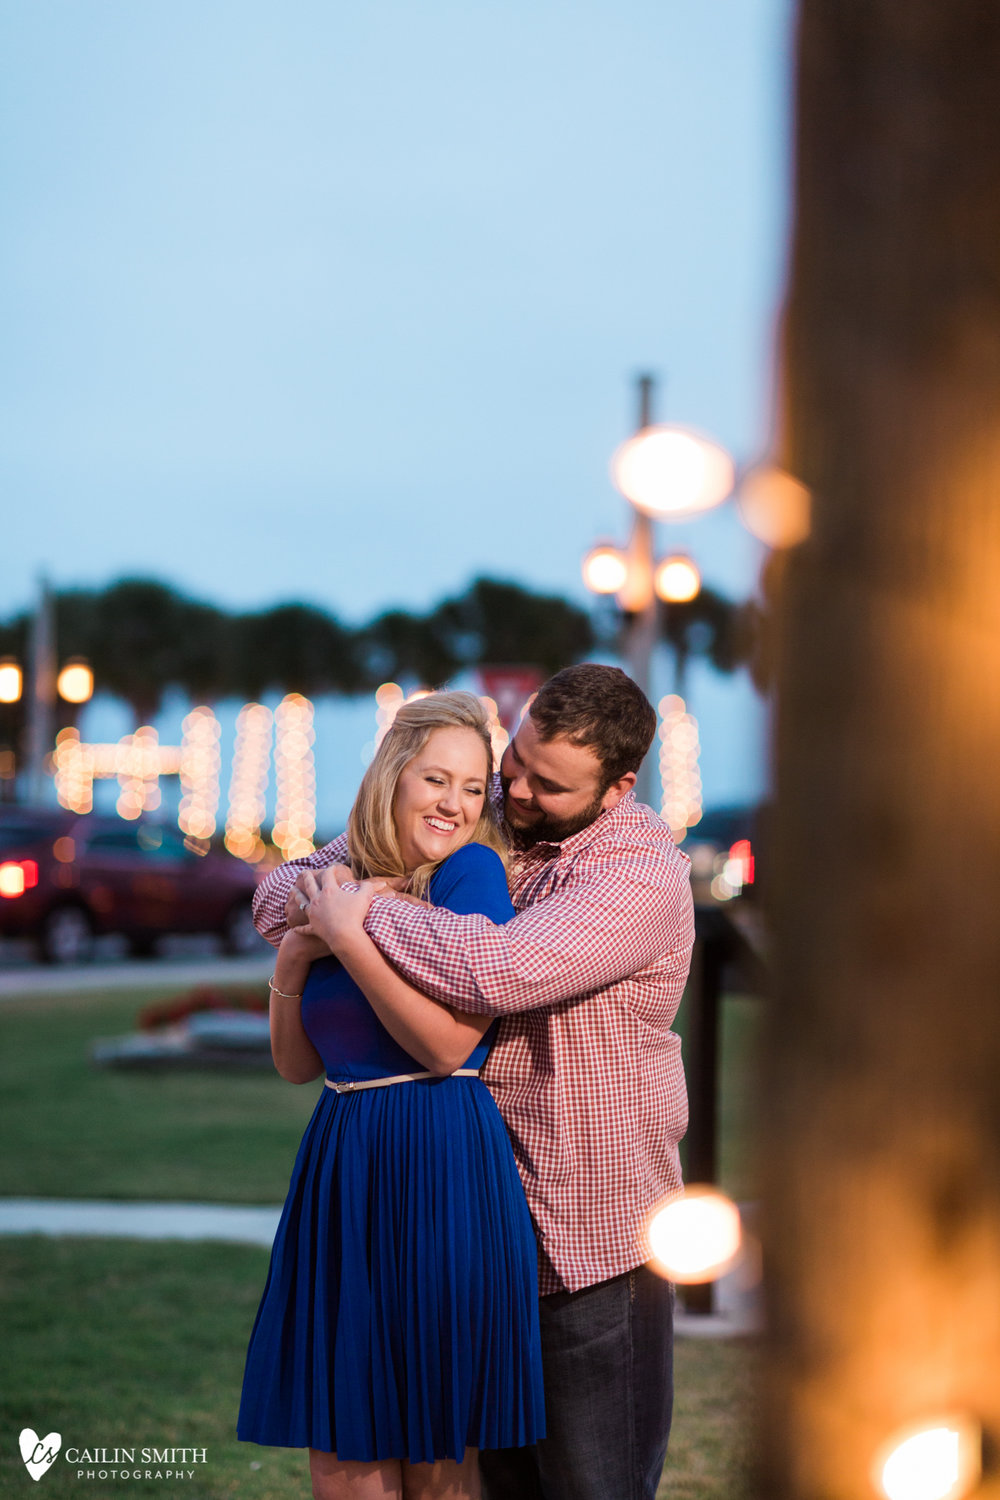 Shari_Brent_St_Augustine_Engagement_Photography_020.jpg